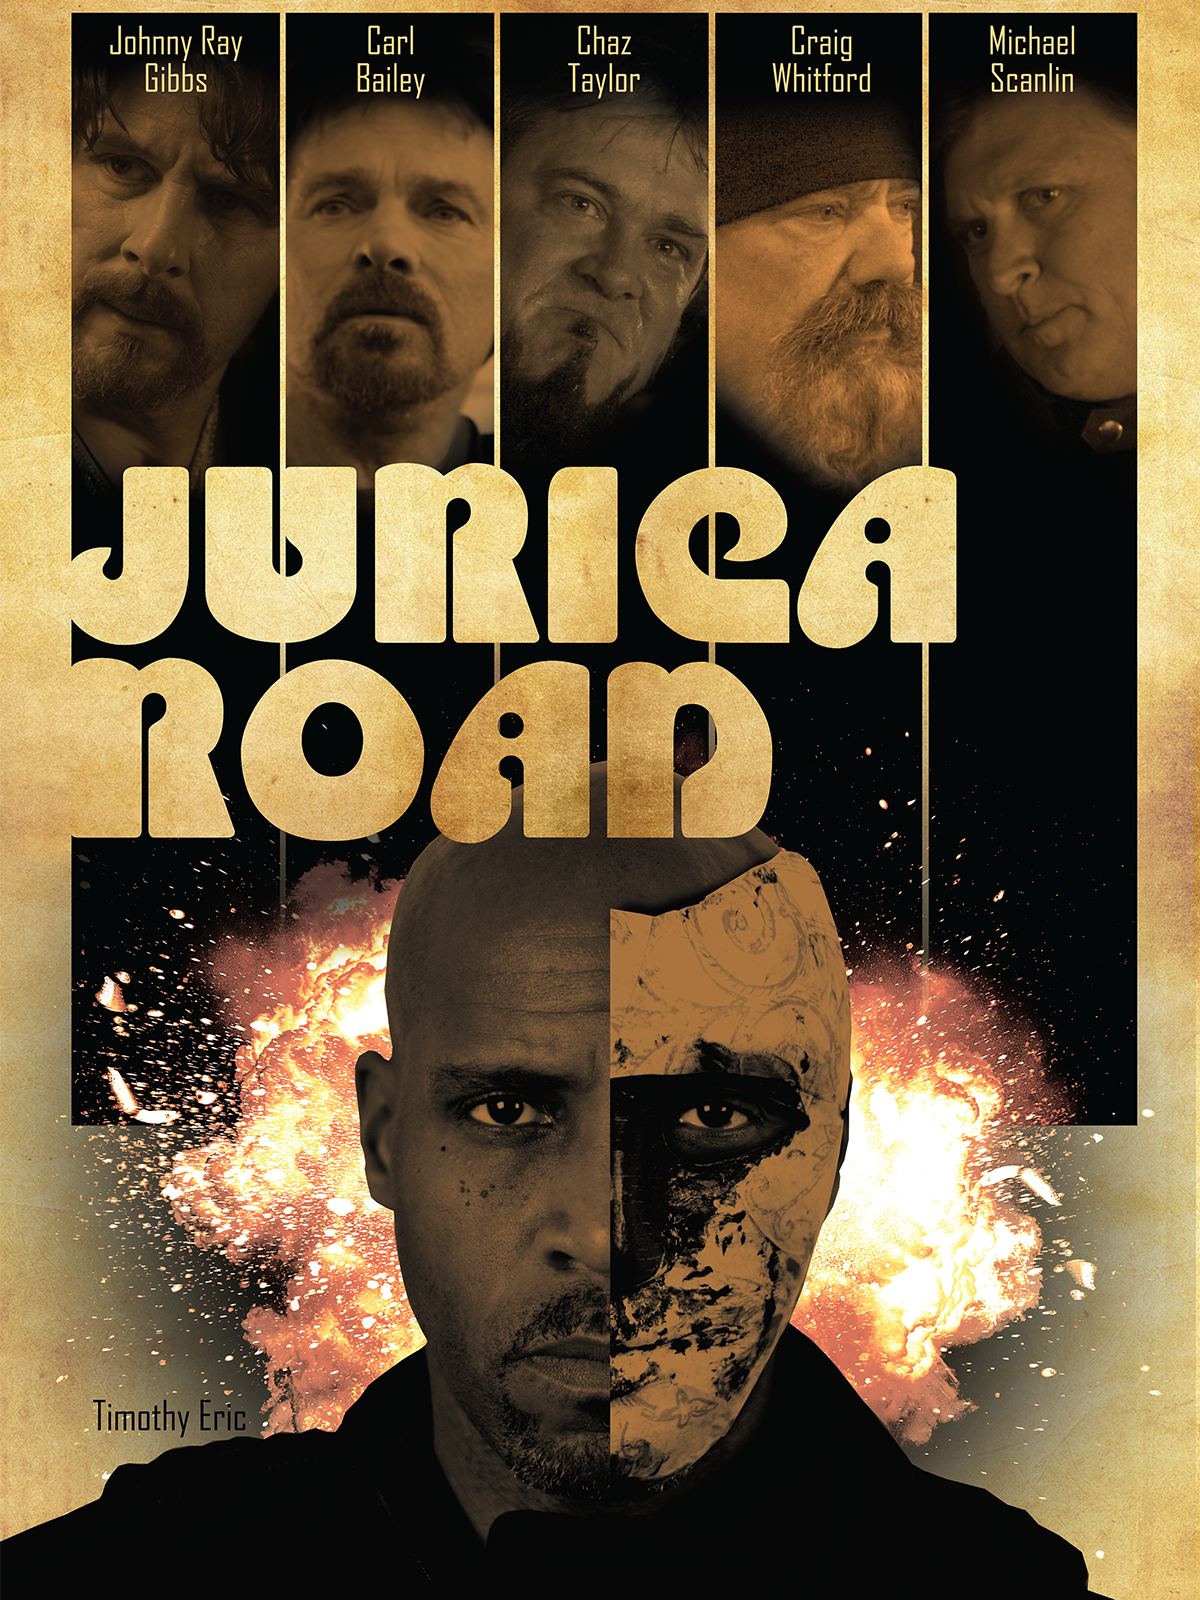 JURICA_ROAD_1200X1600_ARTWORK